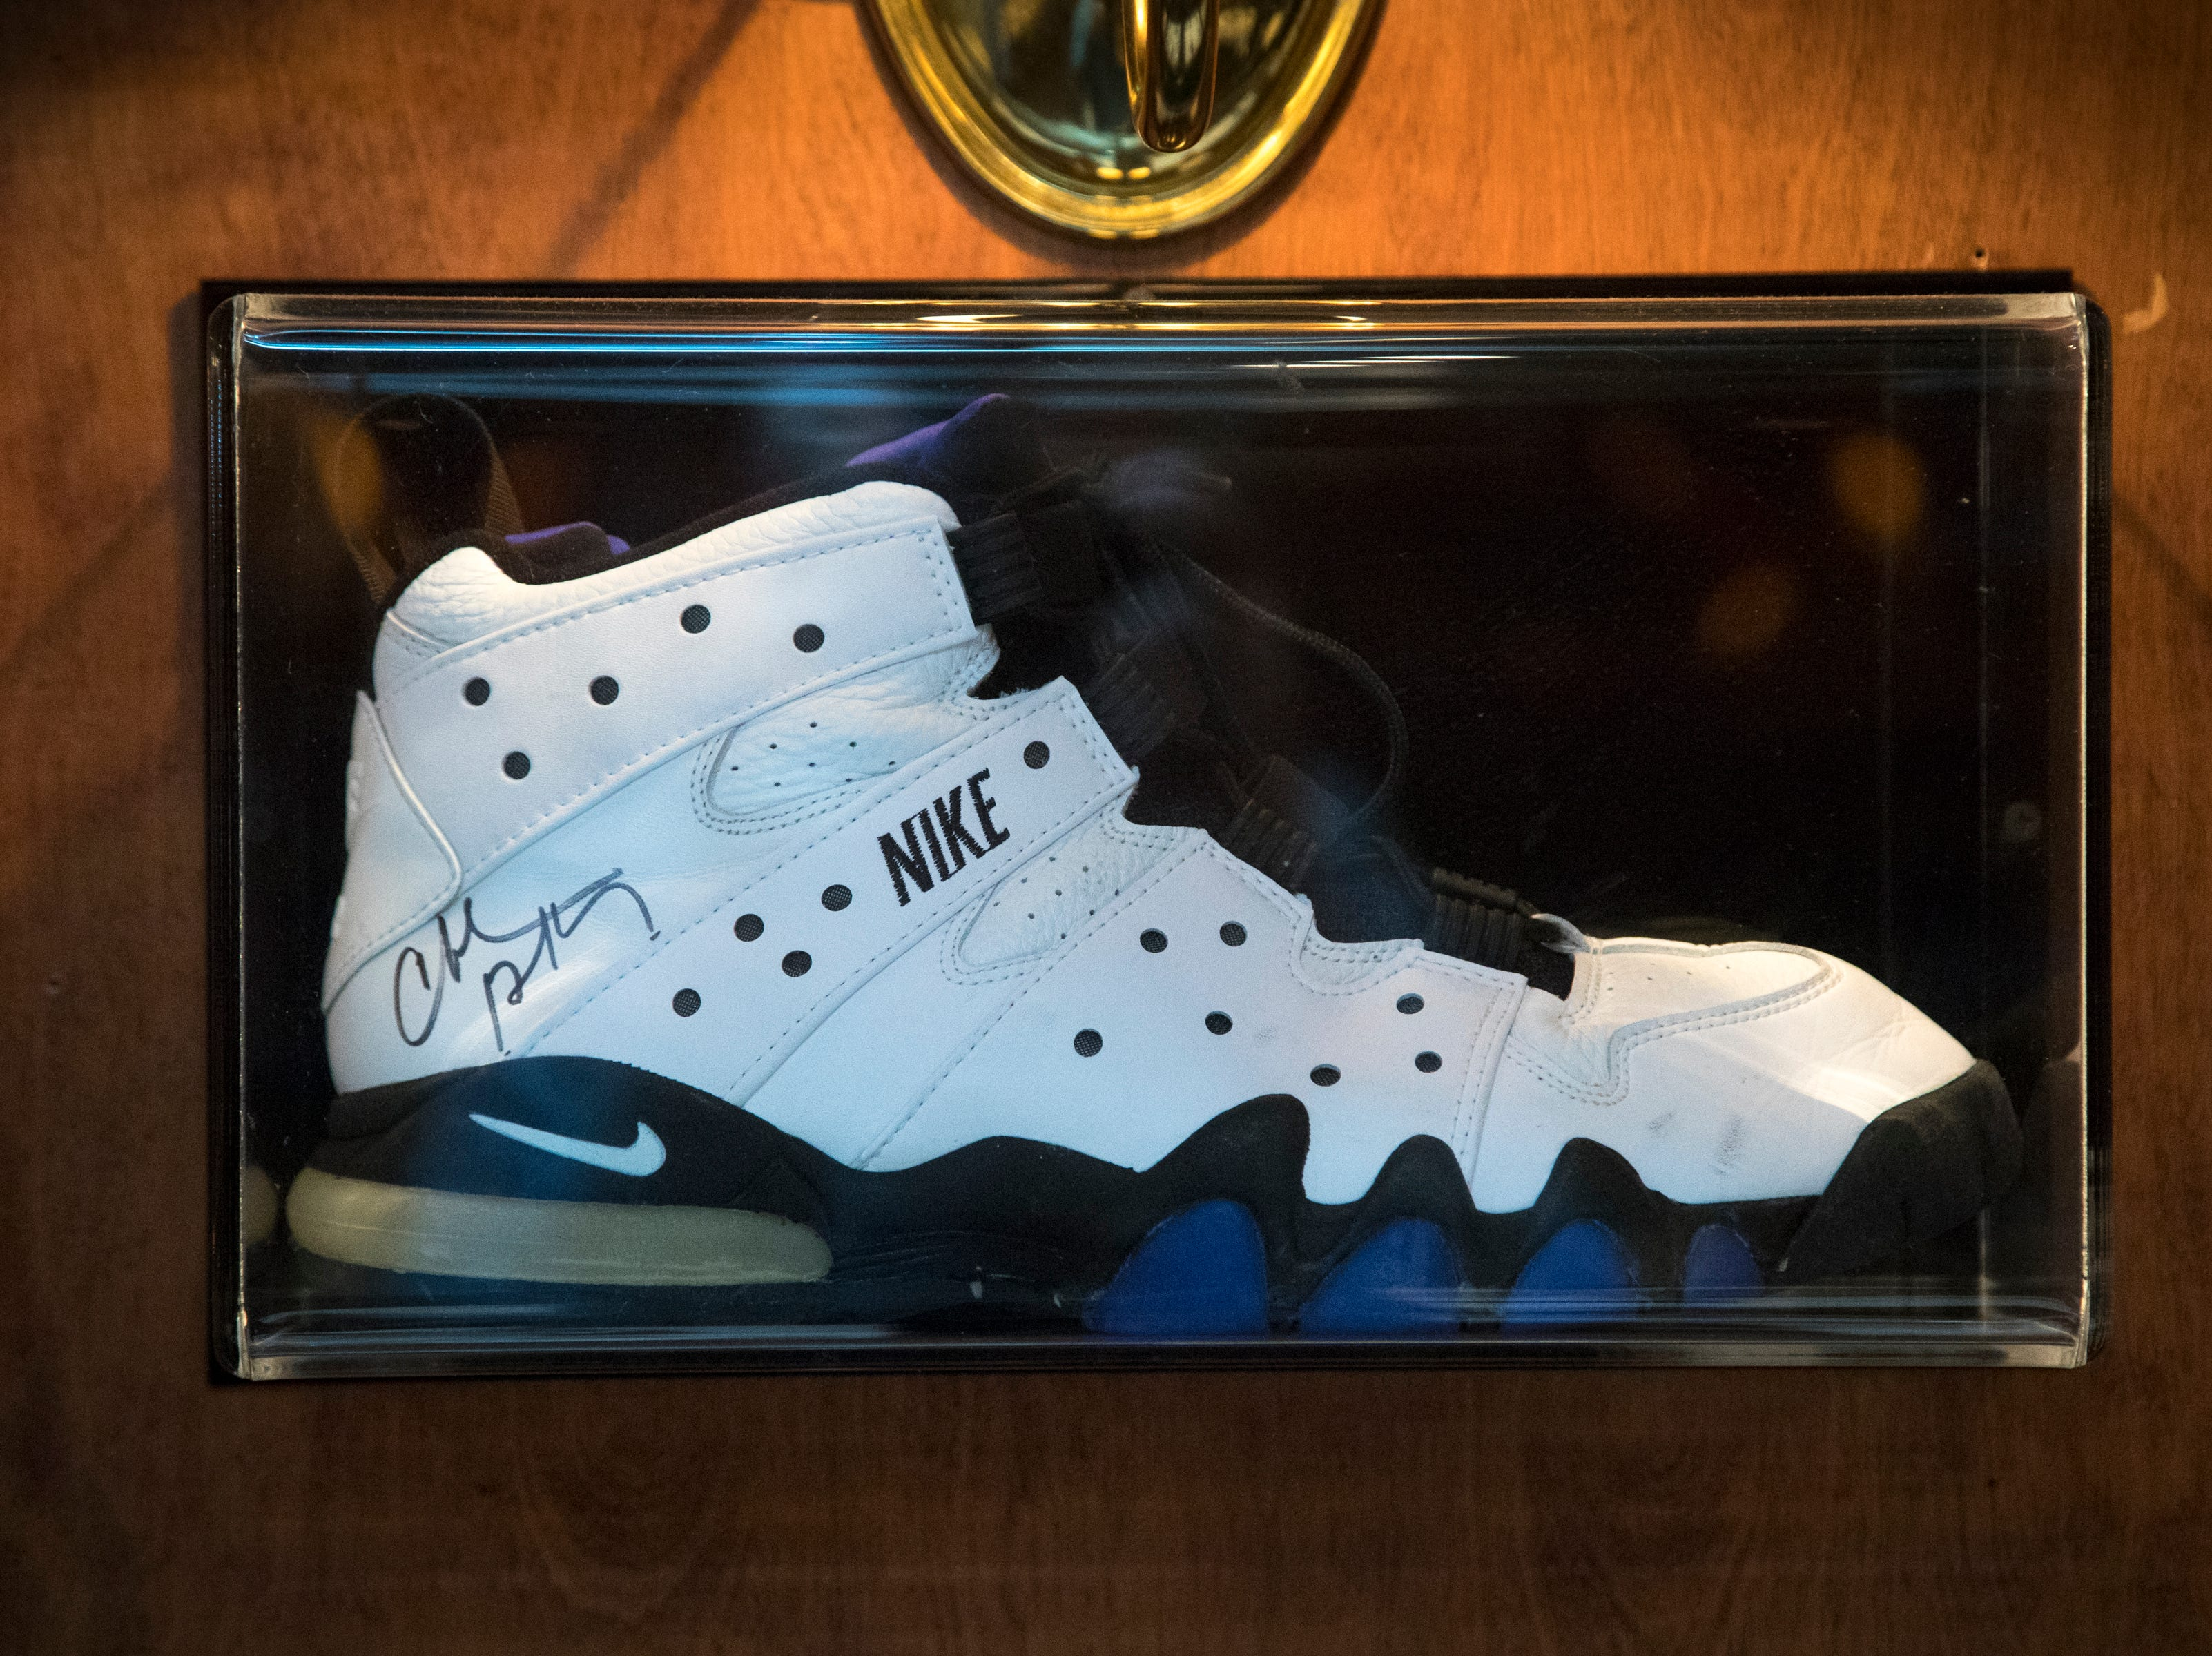 A shoe signed by Charles Barkley is seen Feb. 27, 2019, at Don & Charlie's, 7501 E. Camelback Road, Scottsdale.